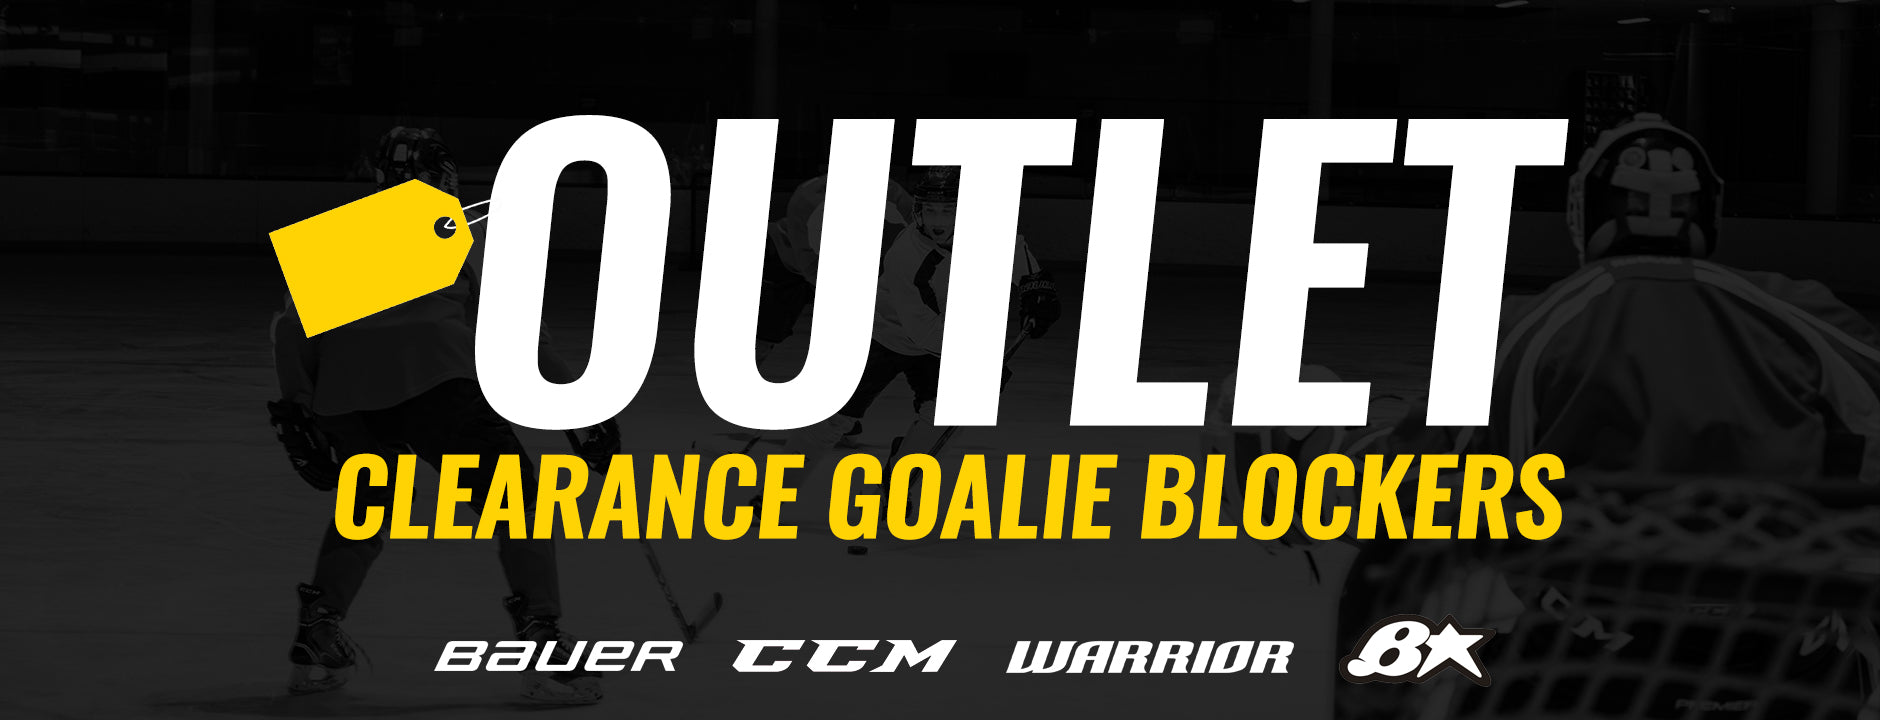 Clearance Goalie Blockers